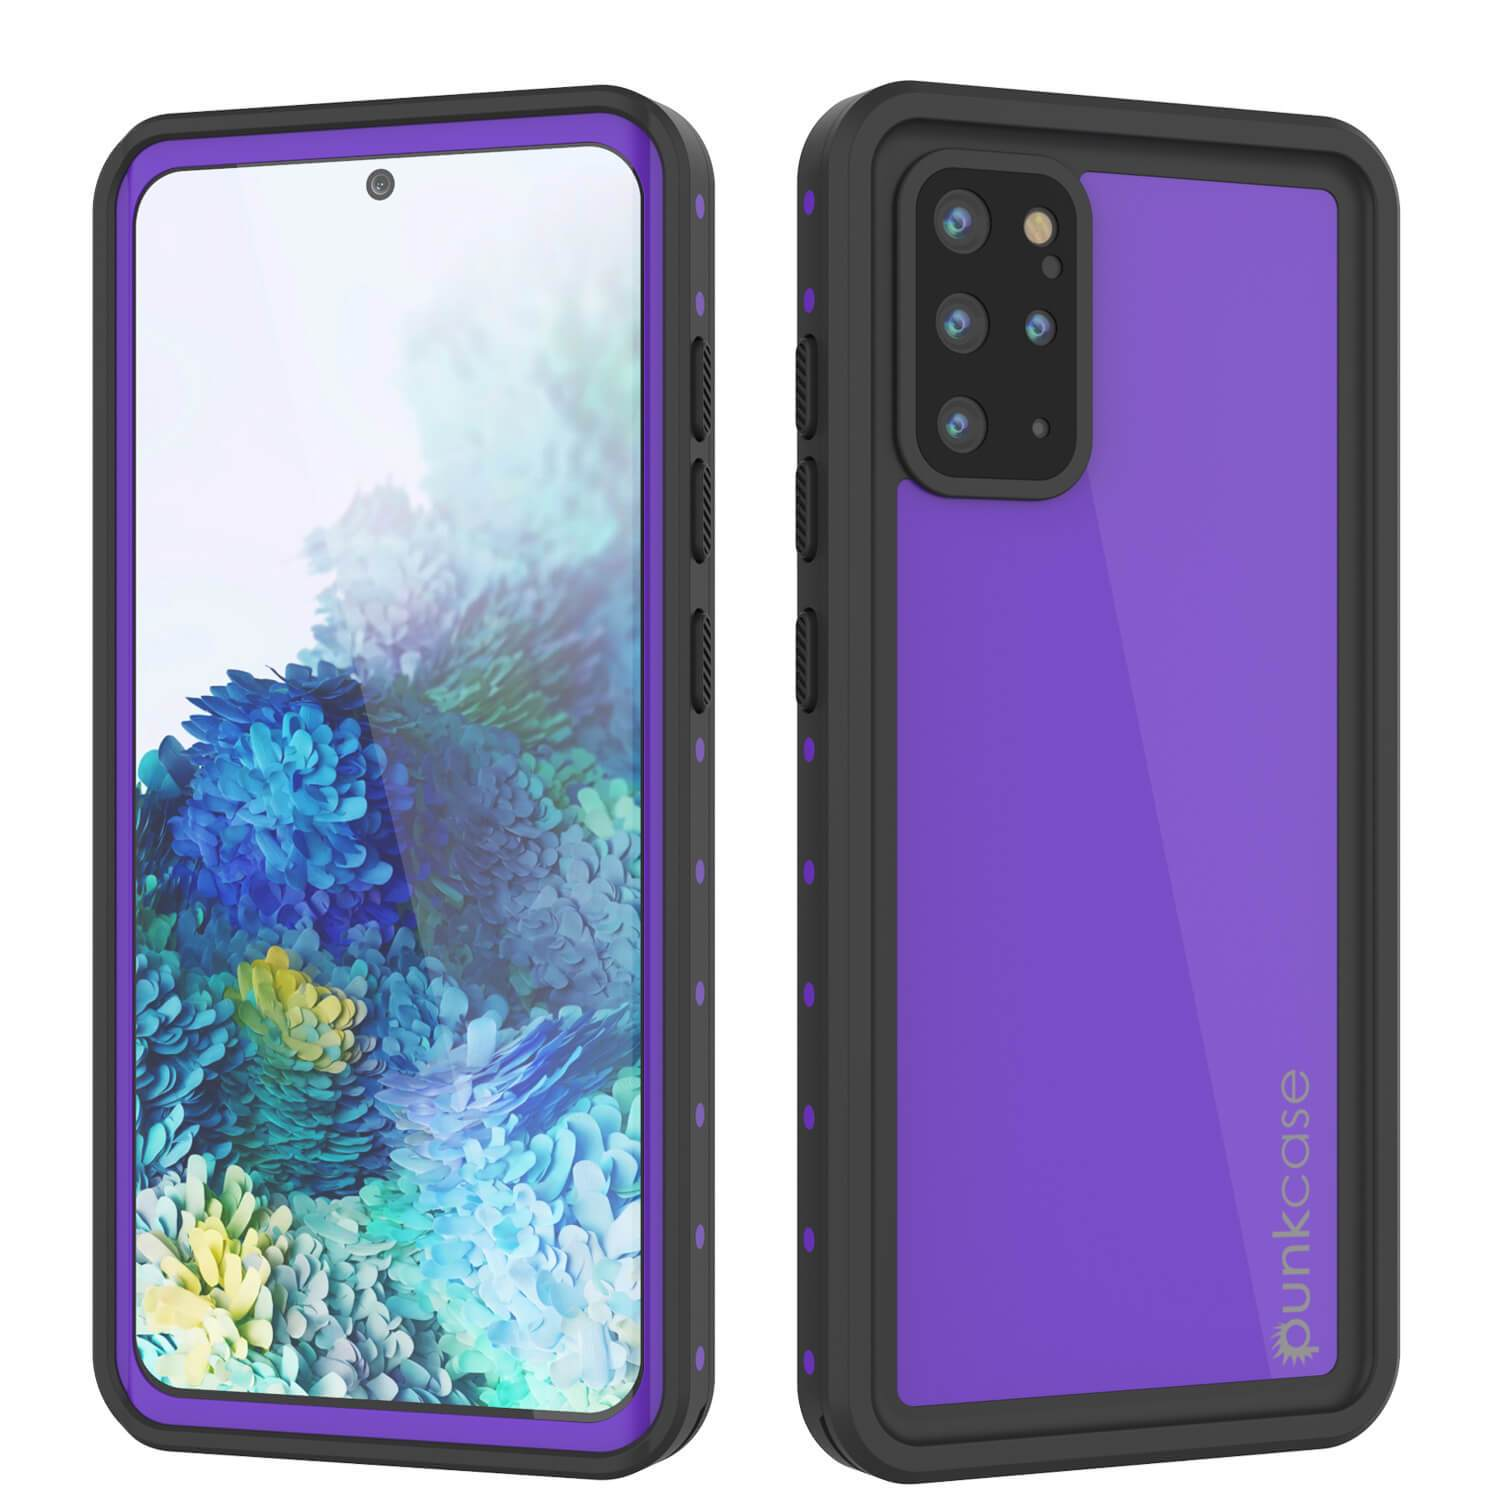 Galaxy S20+ Plus Waterproof Case PunkCase StudStar Purple Thin 6.6ft Underwater IP68 Shock/Snow Proof